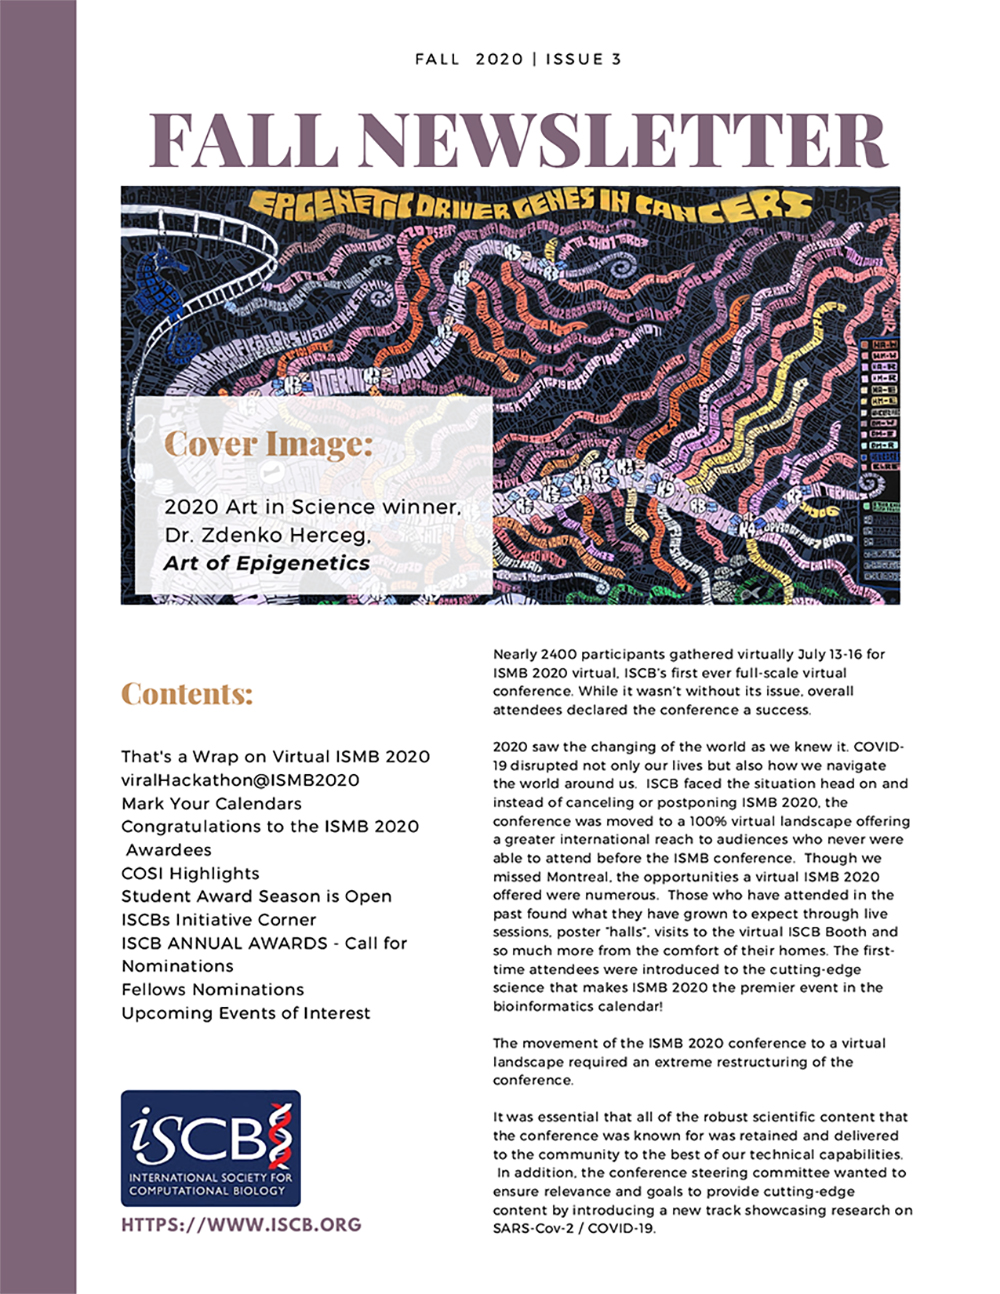 Fall 2020 ISCB Newsletter